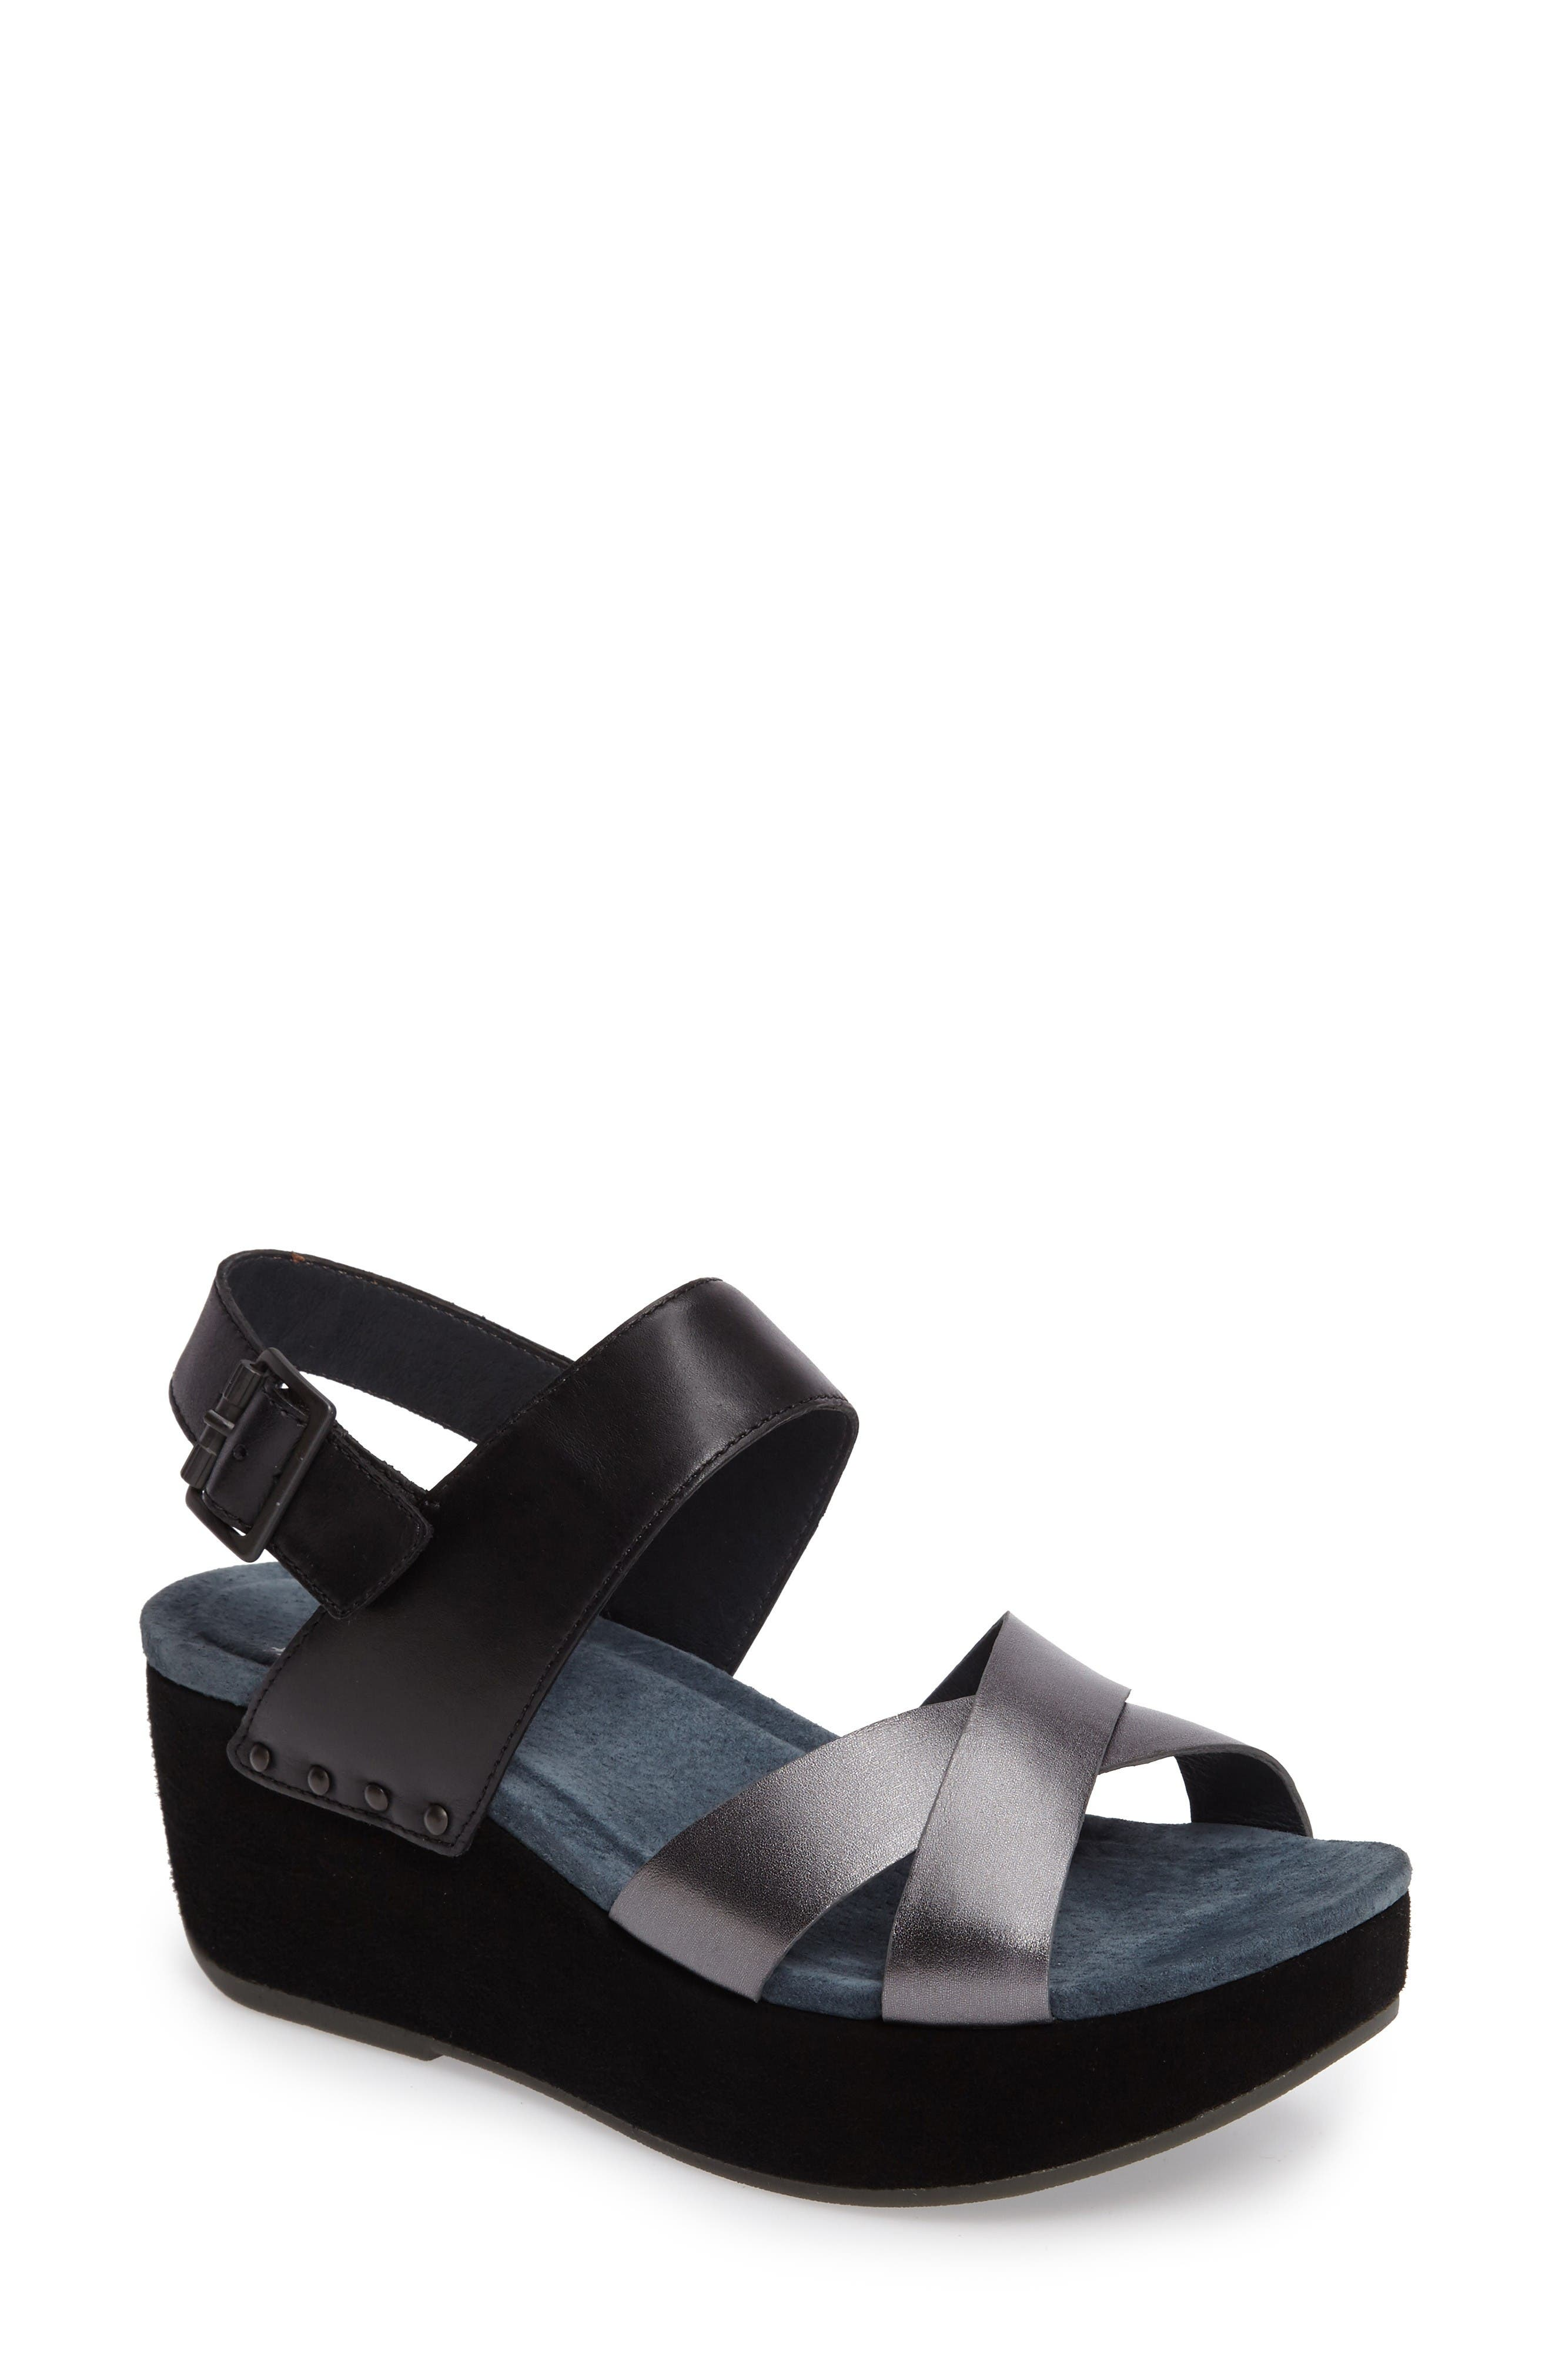 Alternate Image 1 Selected - Dansko Stasia Platform Wedge Sandal (Women)